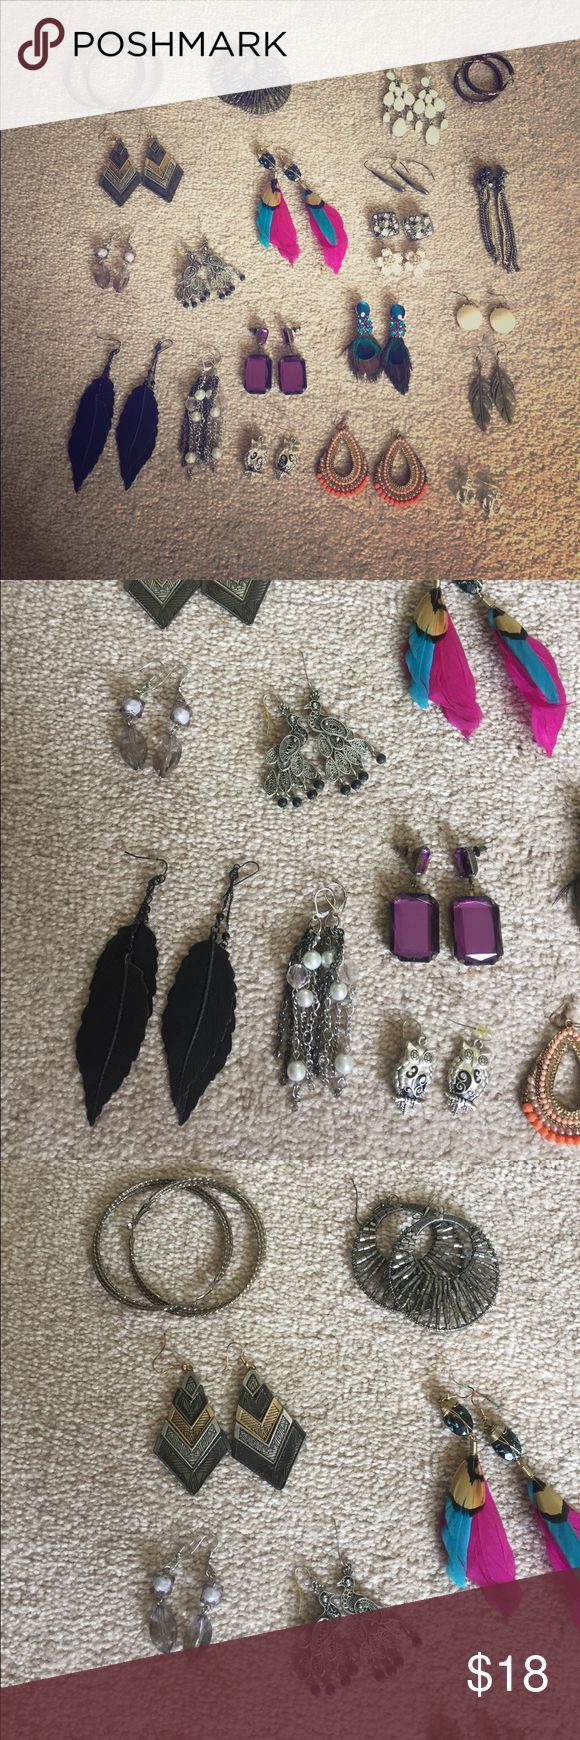 Costume Earring Bundle 21 sets of earrings! All good/great condition, purchased from varied locations (Express, White House Black Market, Charlotte Russe, etc.) Accessories